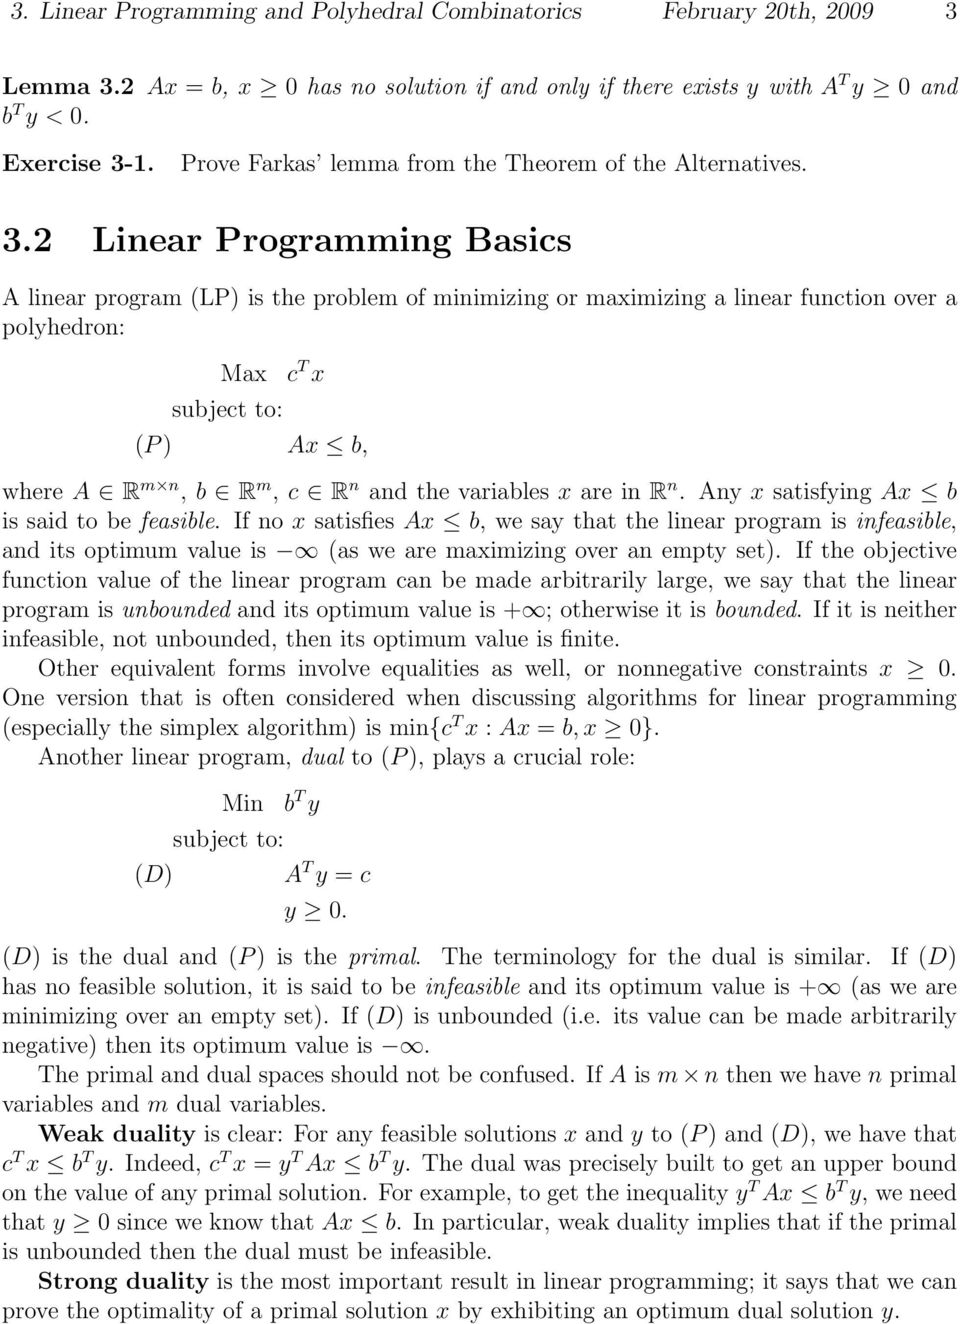 2 Linear Programming Basics A linear program (LP) is the problem of minimizing or maximizing a linear function over a polyhedron: Max subect to: c T x (P ) Ax b, where A R m n, b R m, c R n and the